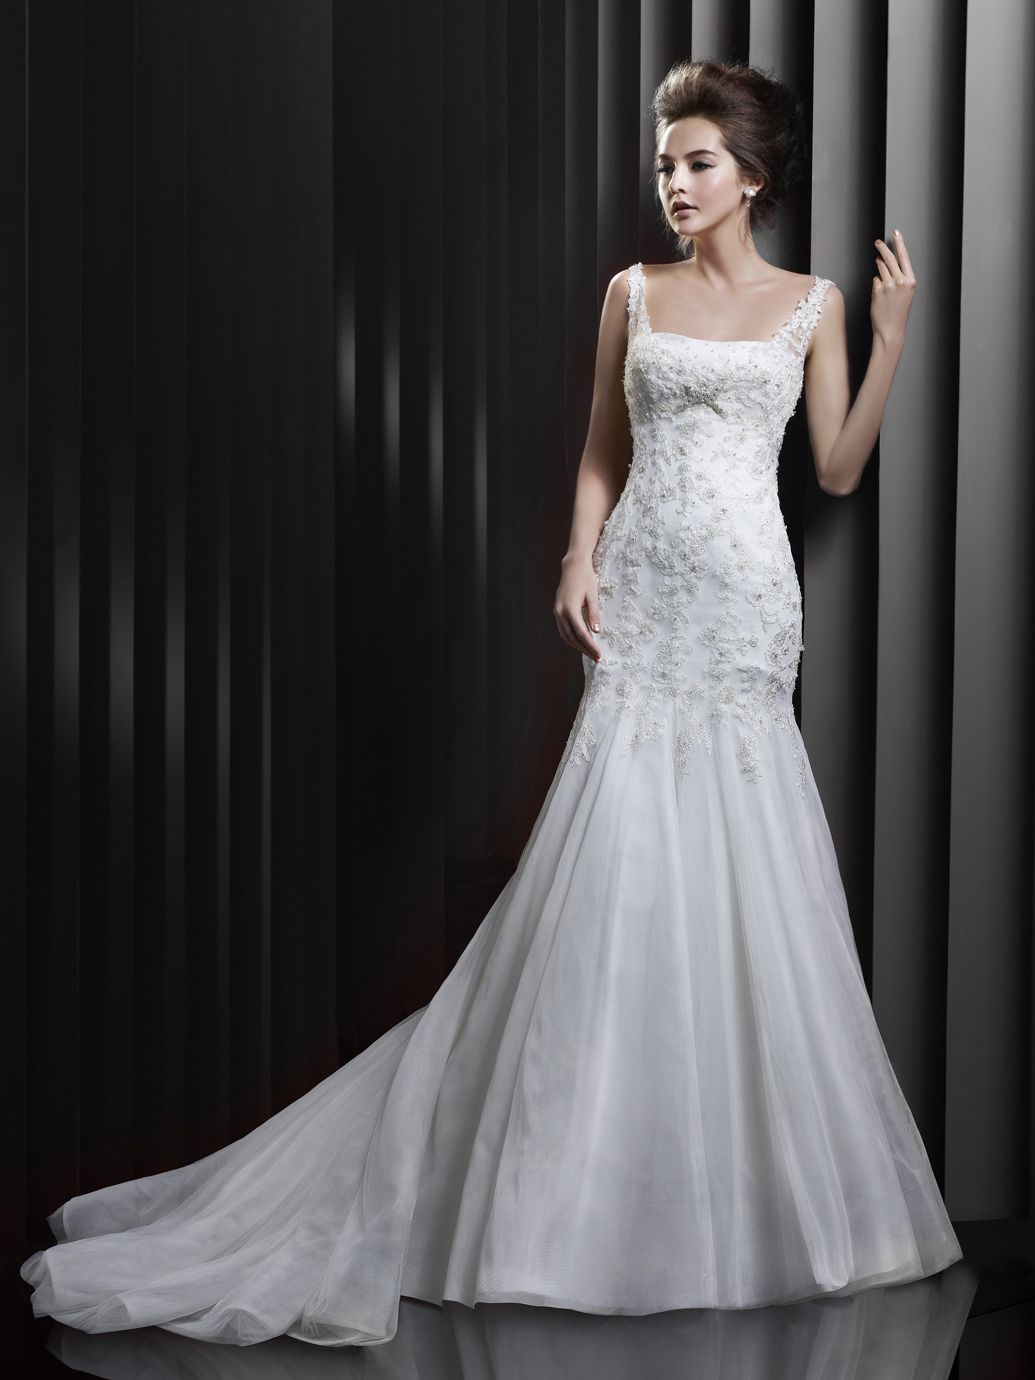 1940s style wedding dresses  BT  Beautiful Collection  Enzoani  Available Colours  Ivory